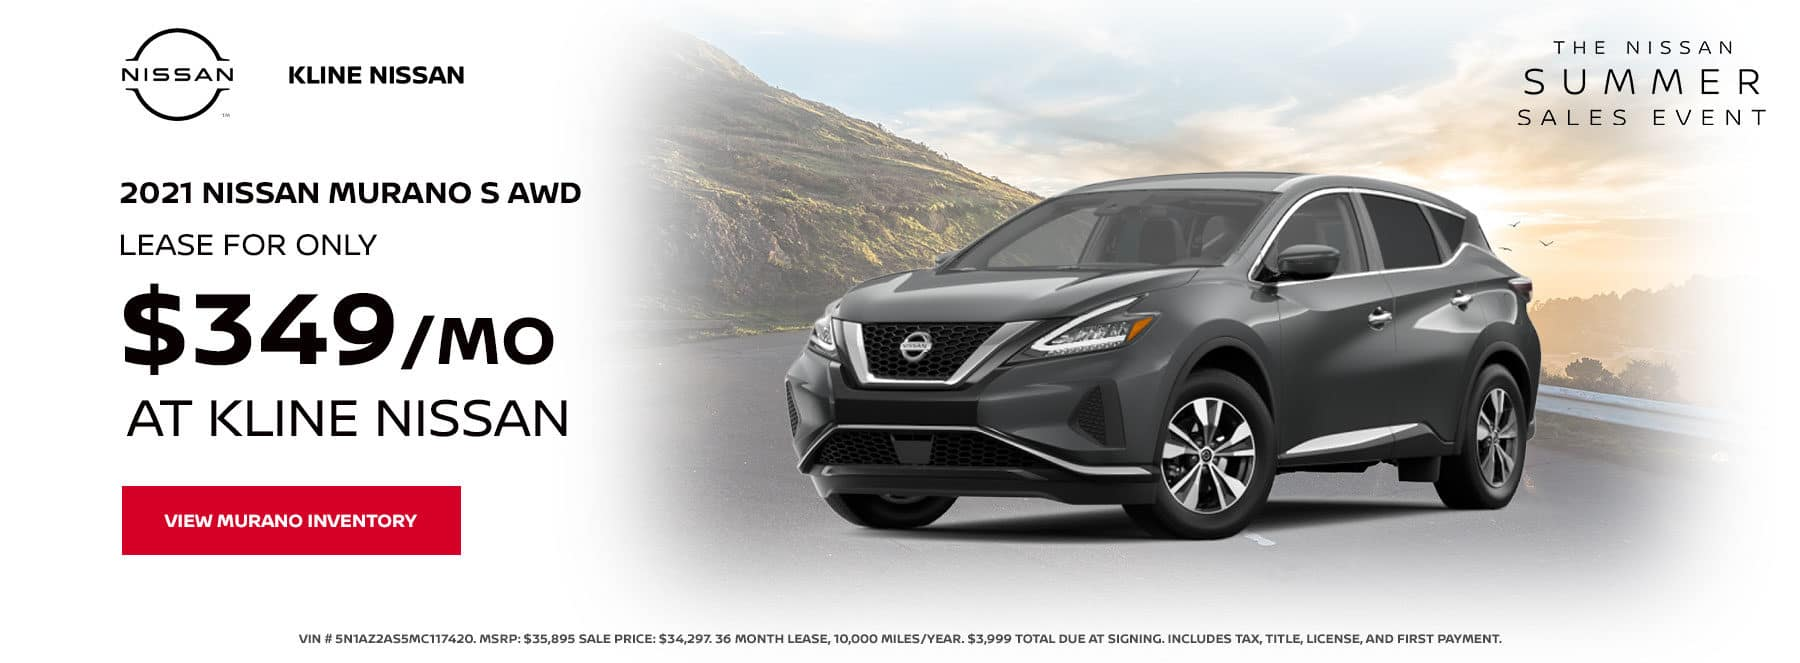 Lease a 2021 Nissan Murano S AWD, for only $349/mo at Kline Nissan